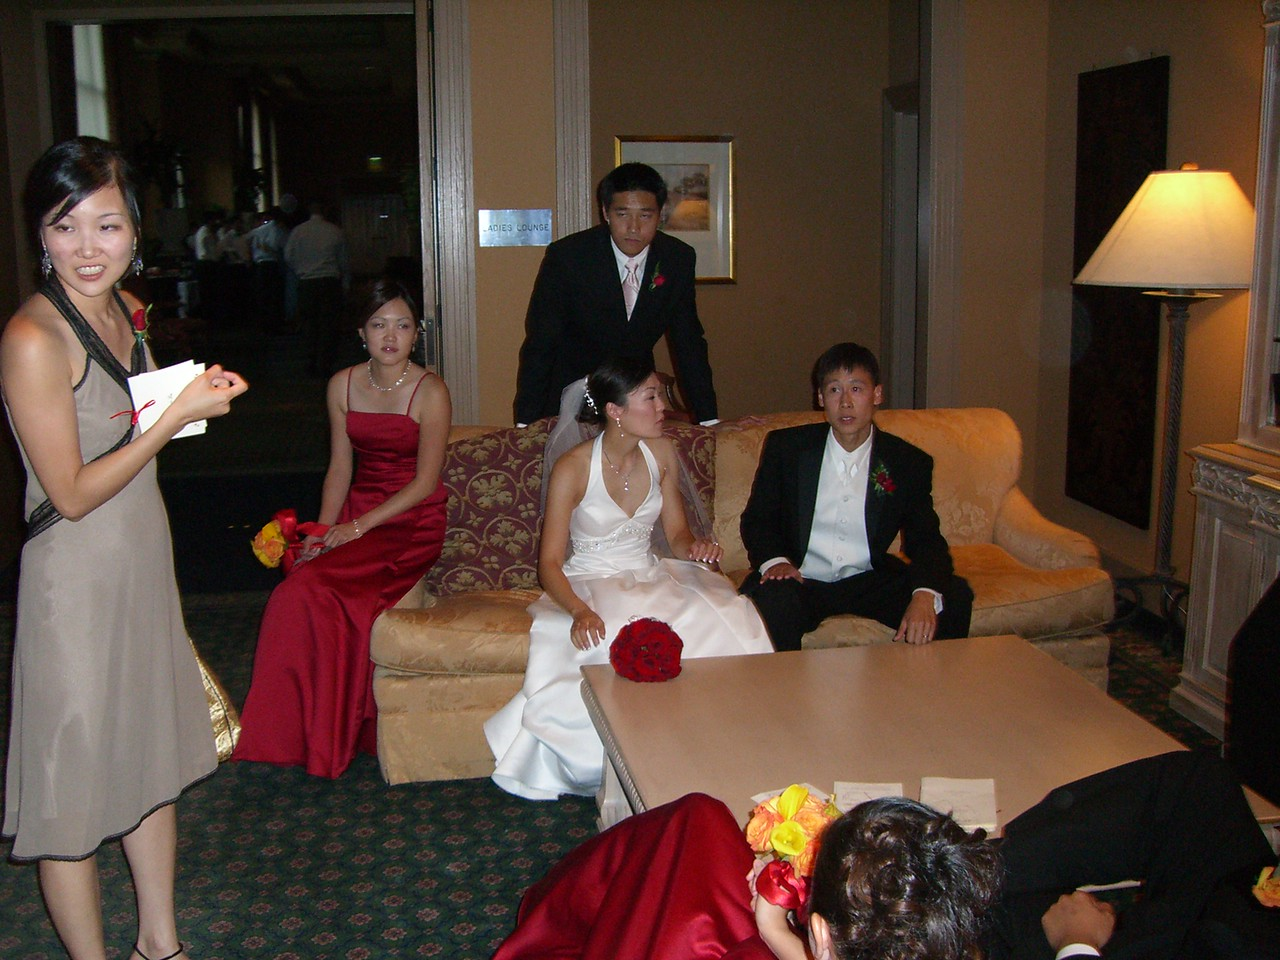 Wedding party waiting to enter reception